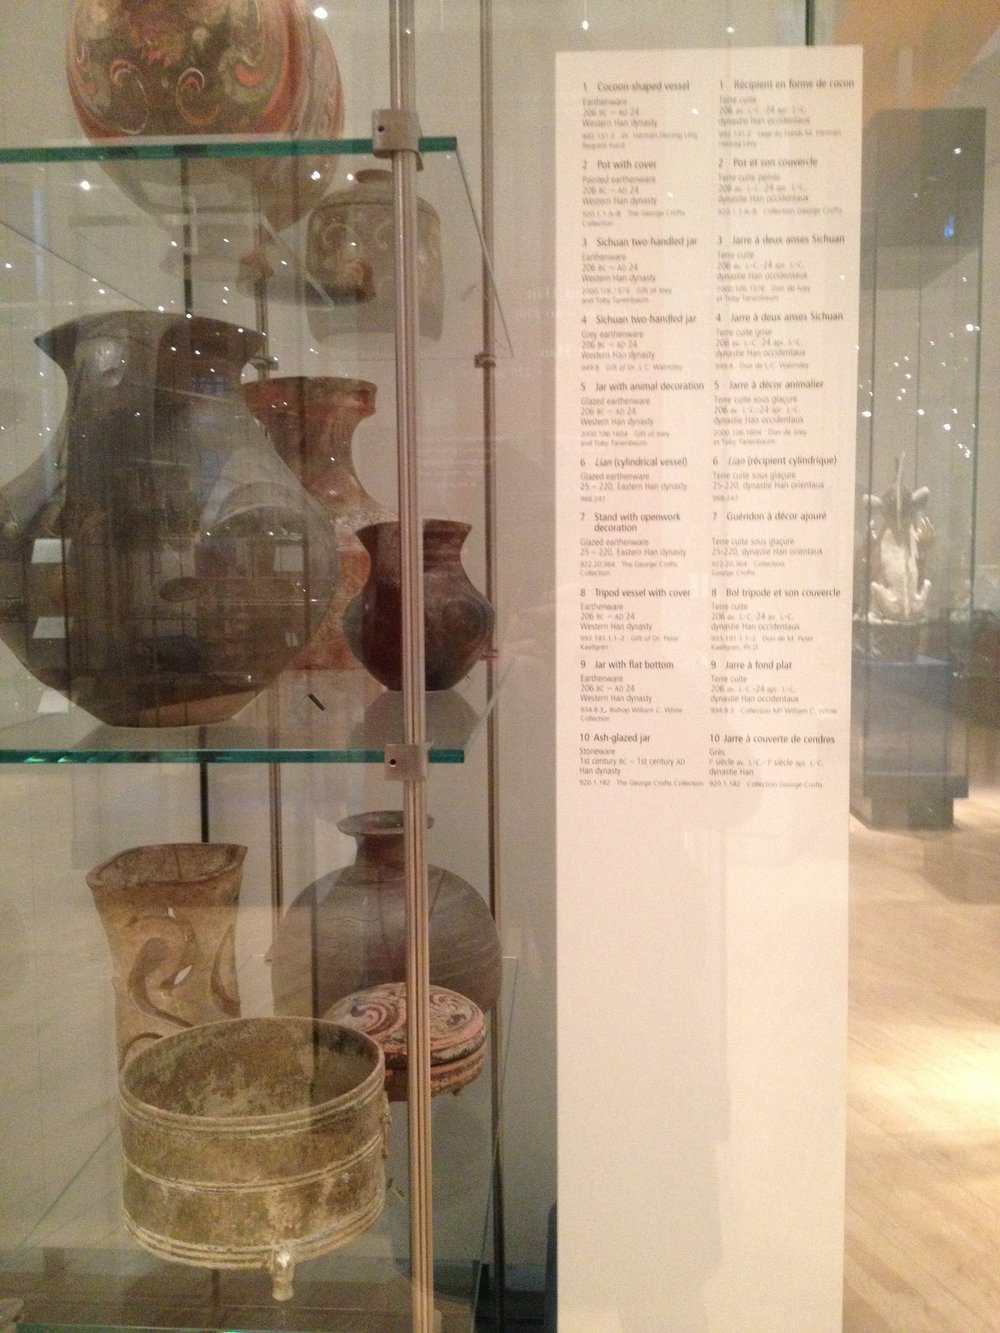 1. A detailed list of the items displayed in this exhibit case (Ancient China exhibit). - These cards lend credibility to the artifacts. It tells us where they came from, who curates them, and what particular collection they belong to + year found.